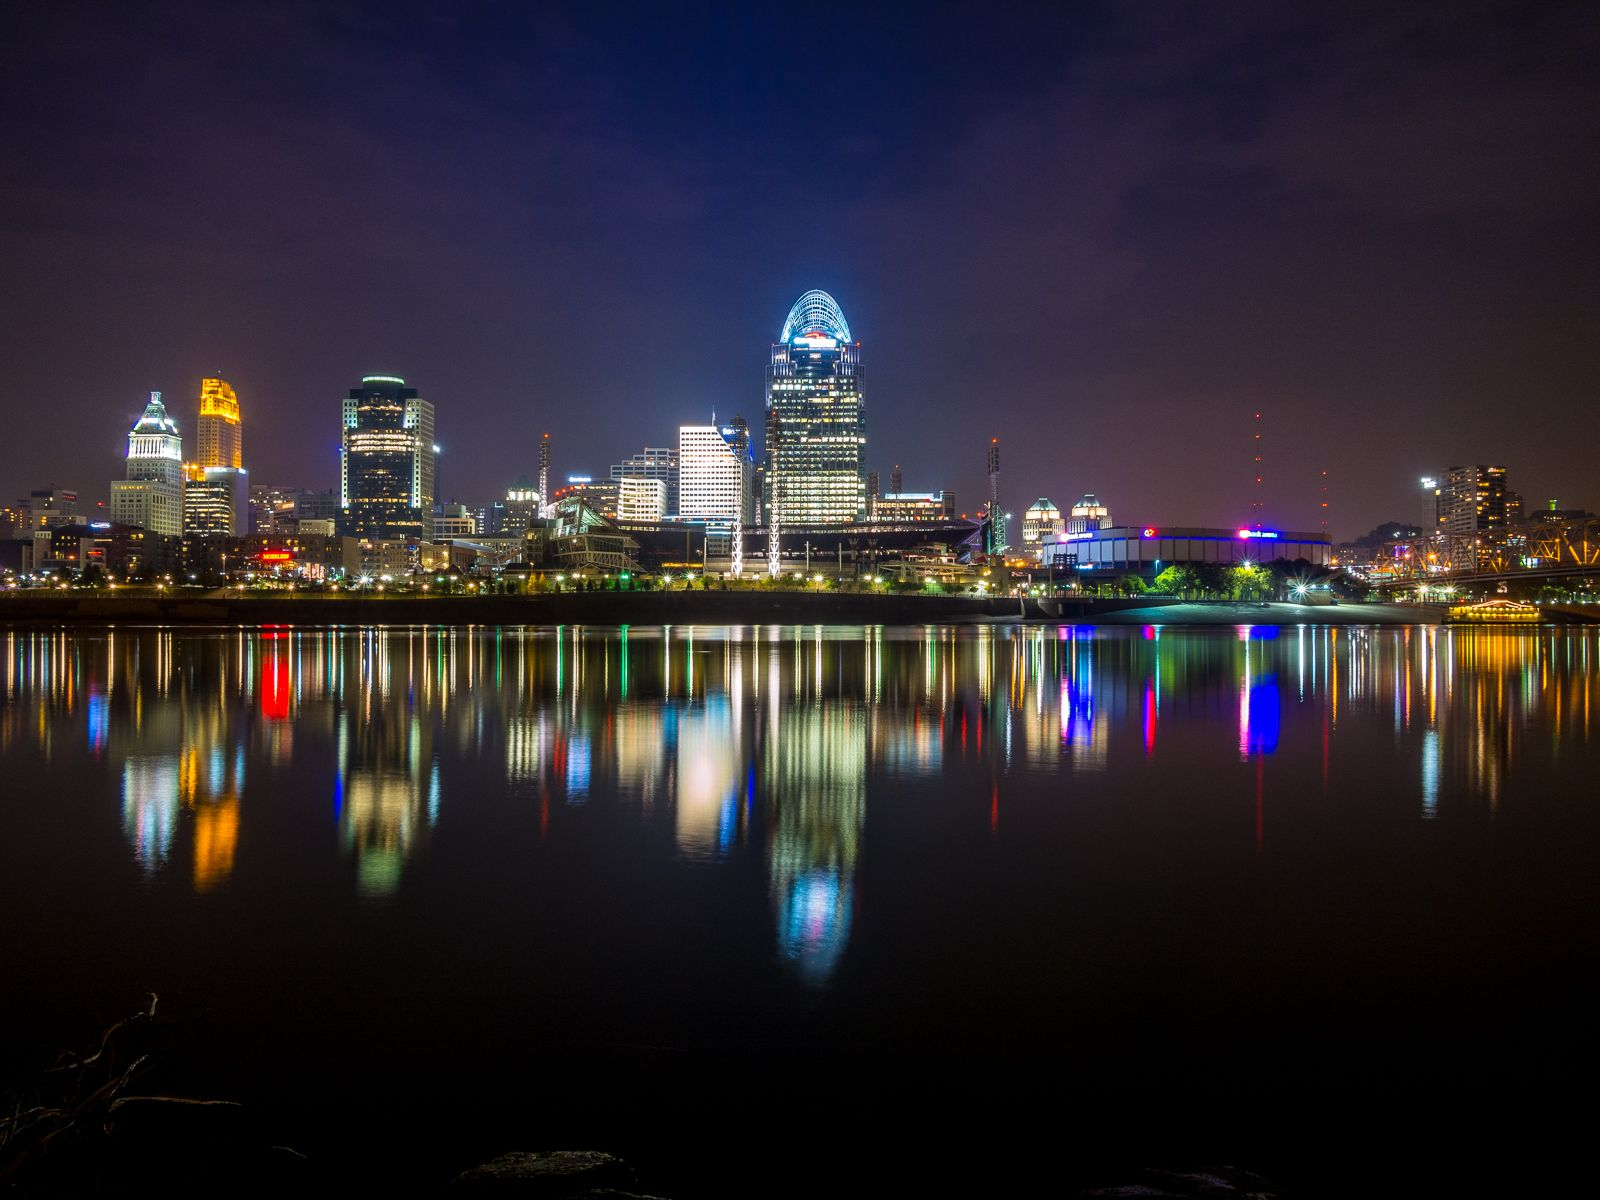 columbus ohio wallpaper - photo #20